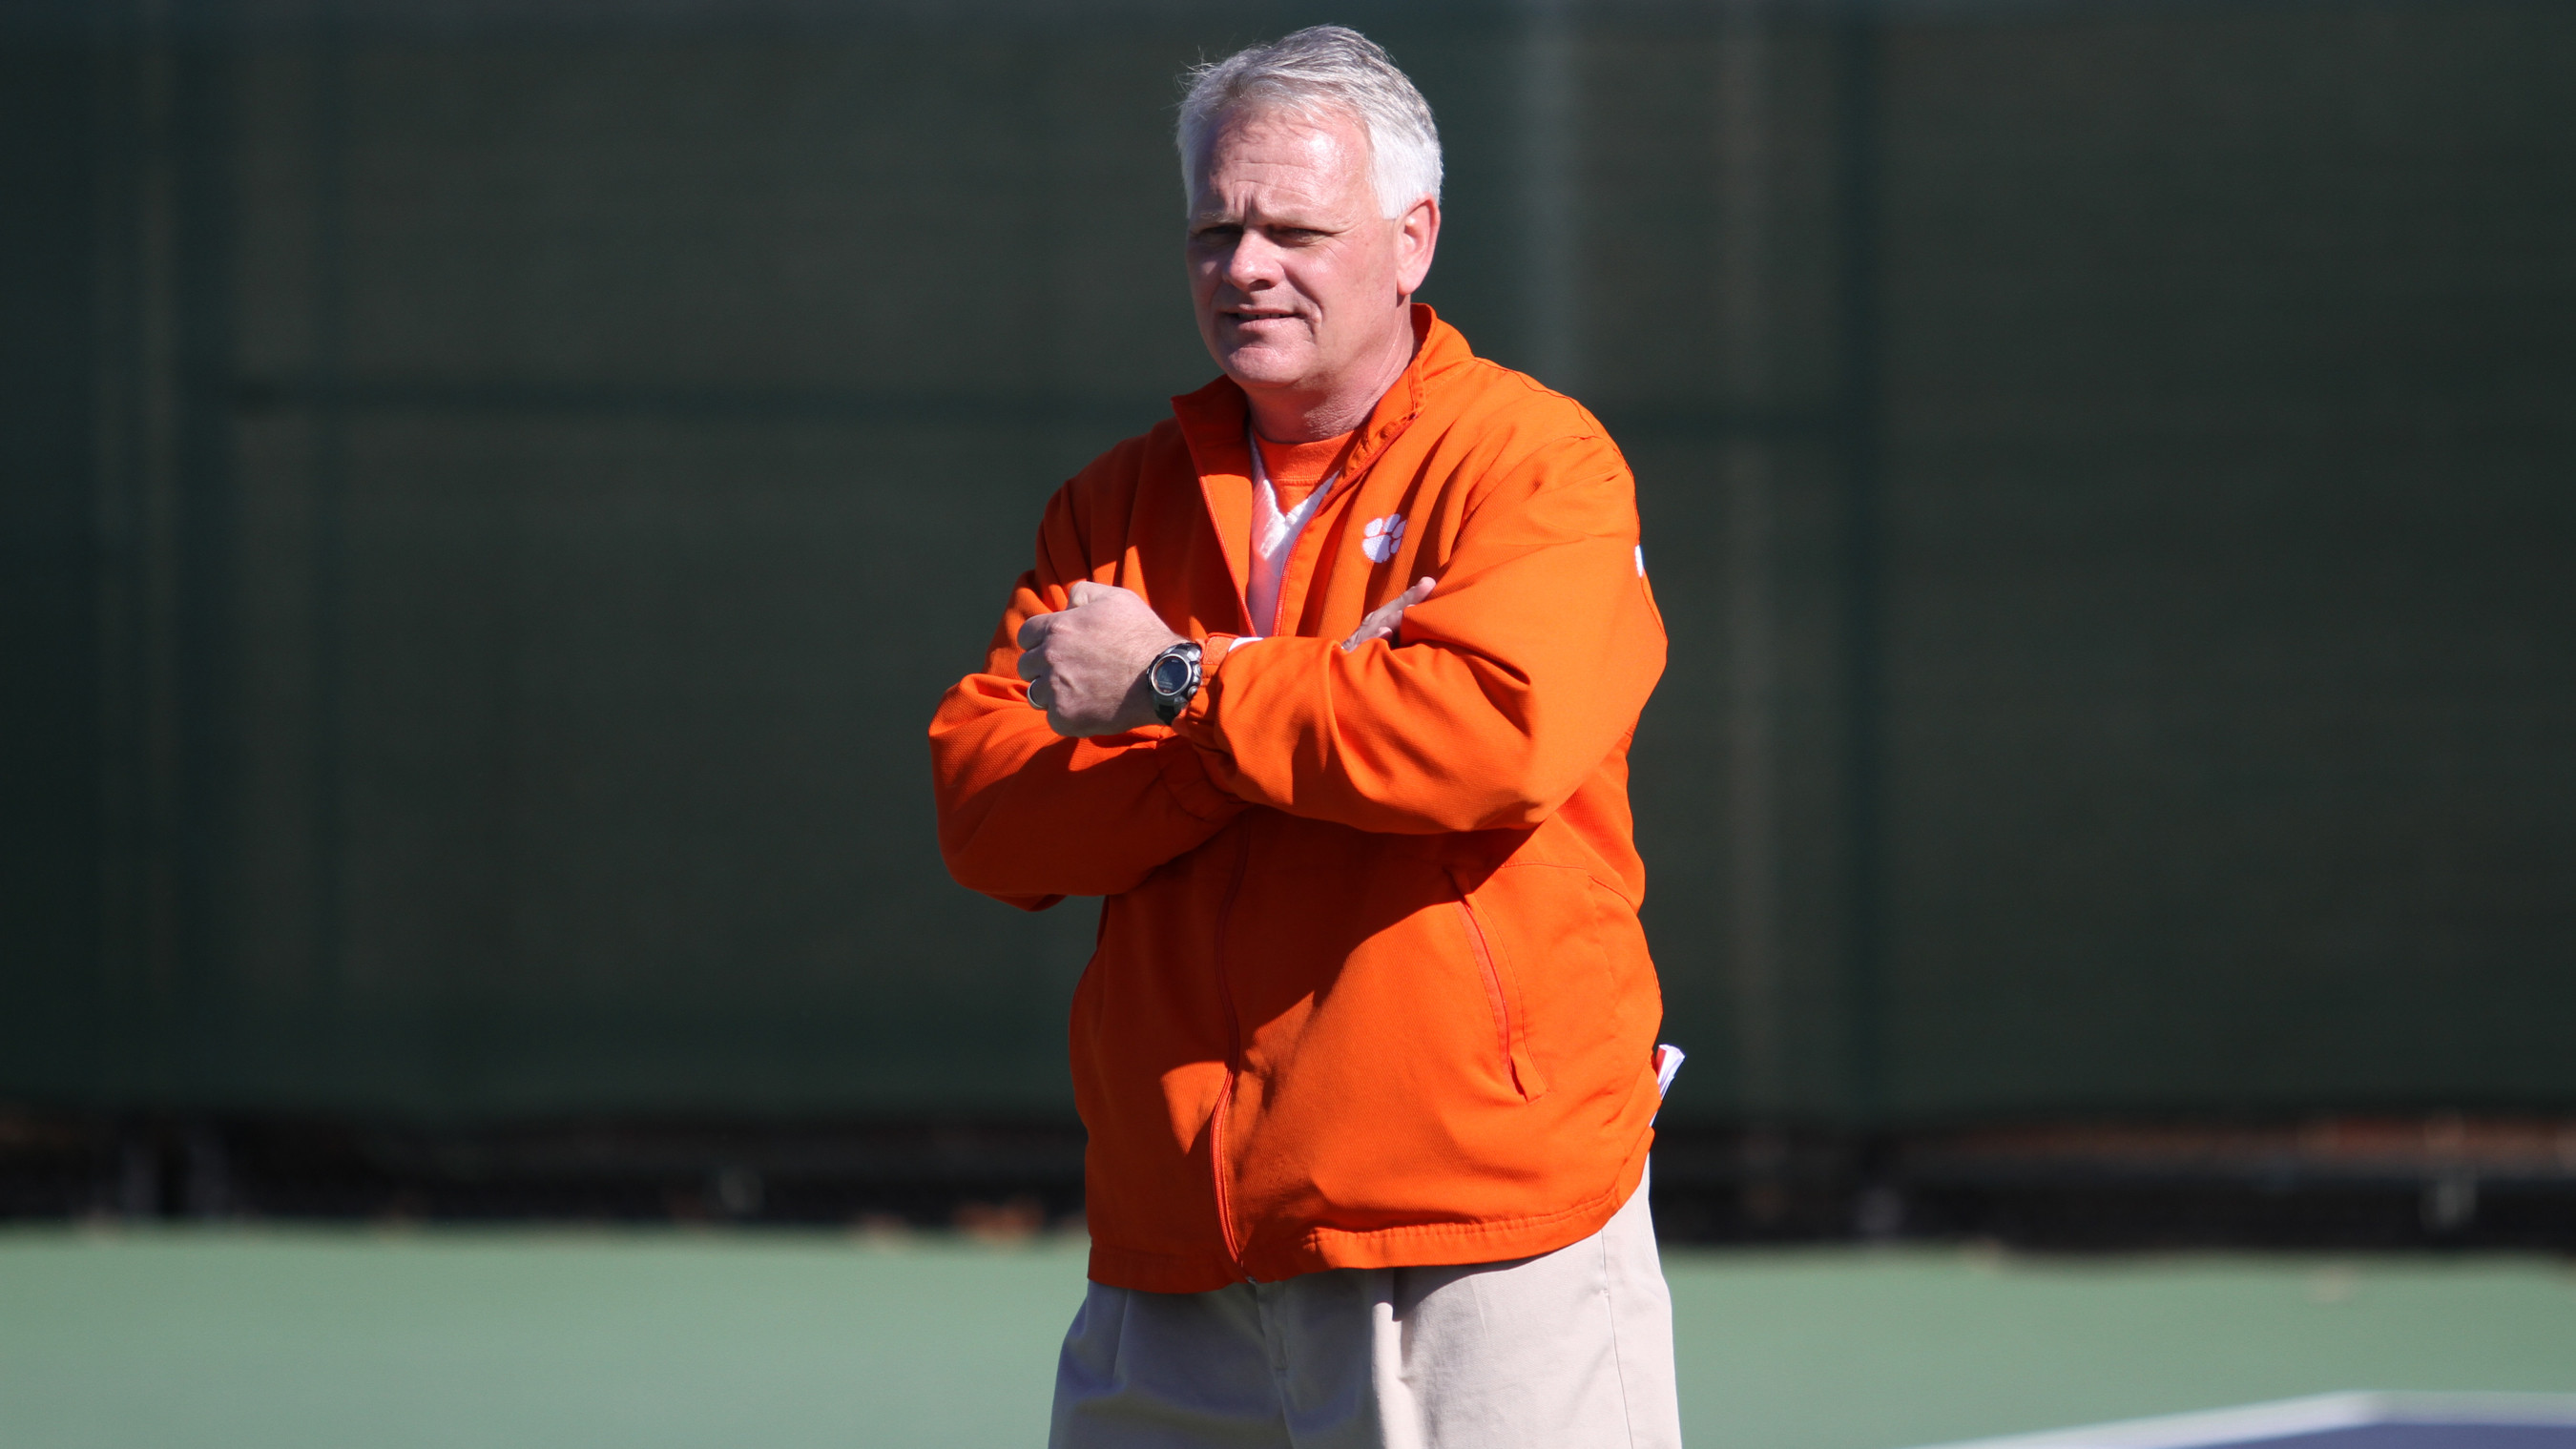 Clemson Ranked 21st in Men?s Tennis